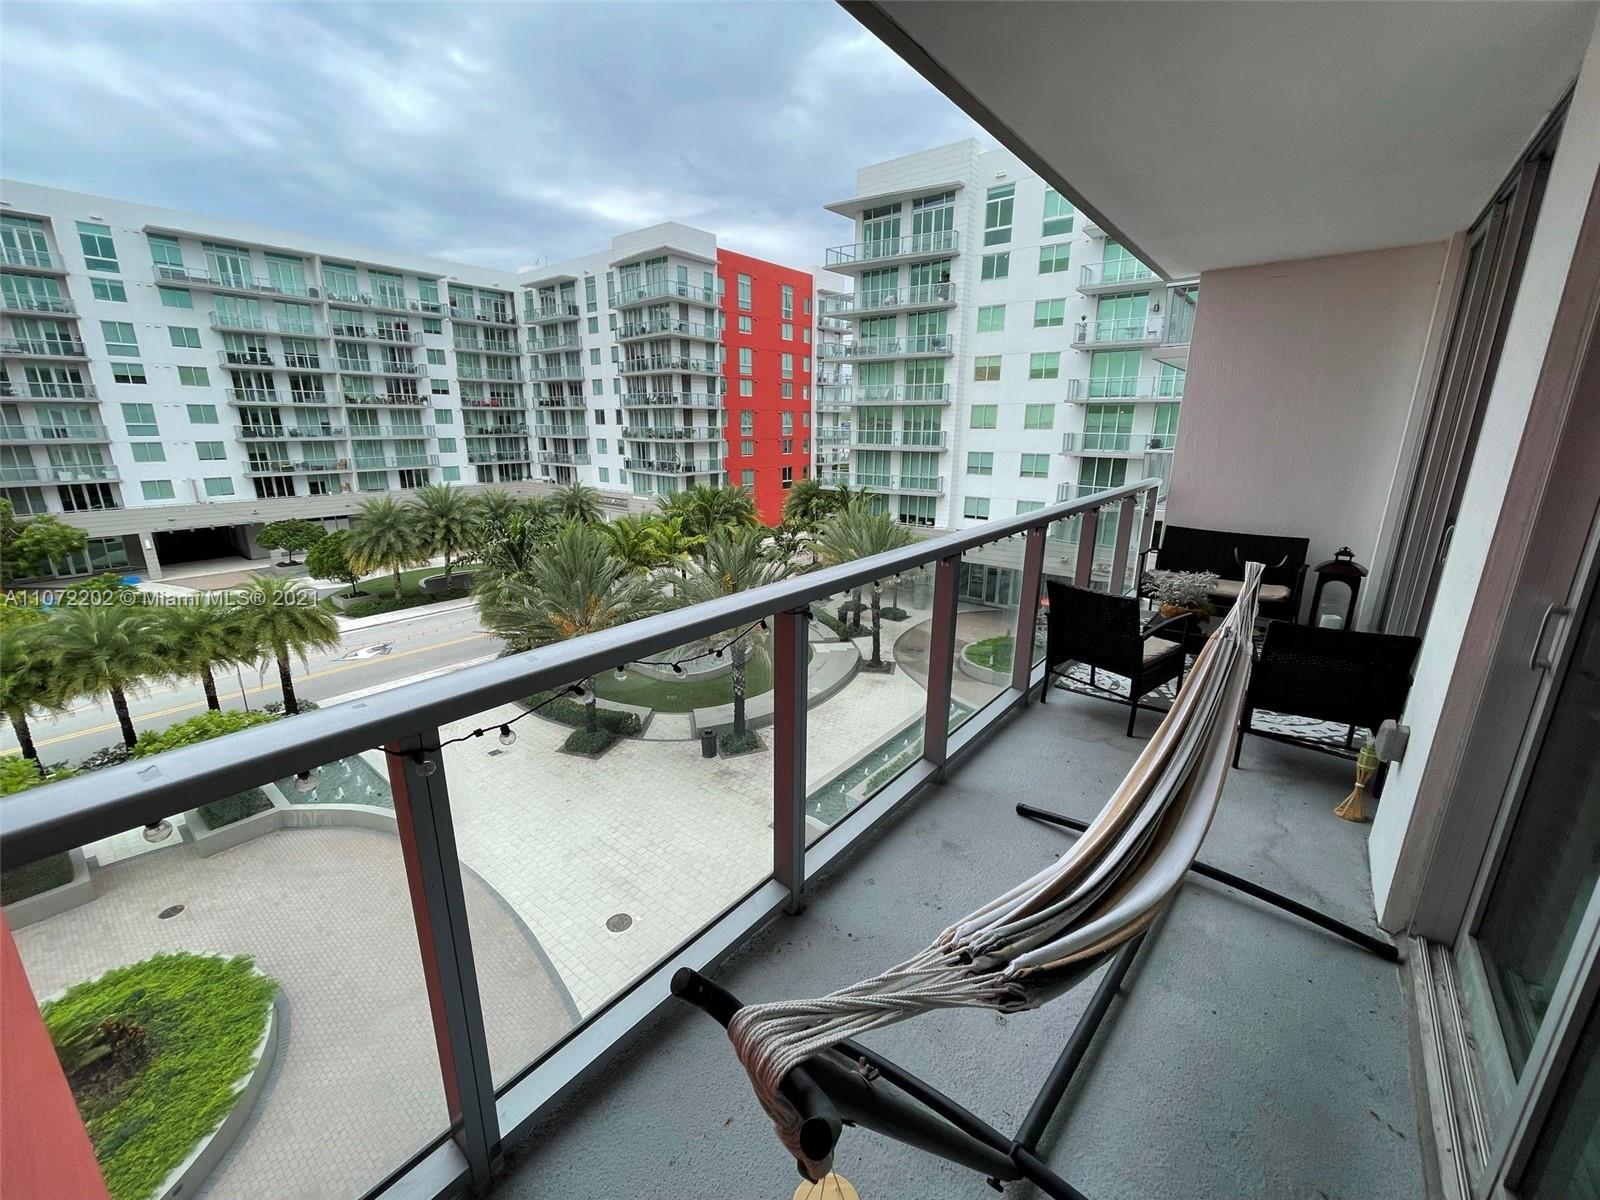 Midtown Doral - Building 2 #410 - 7751 NW 107th Ave #410, Doral, FL 33178